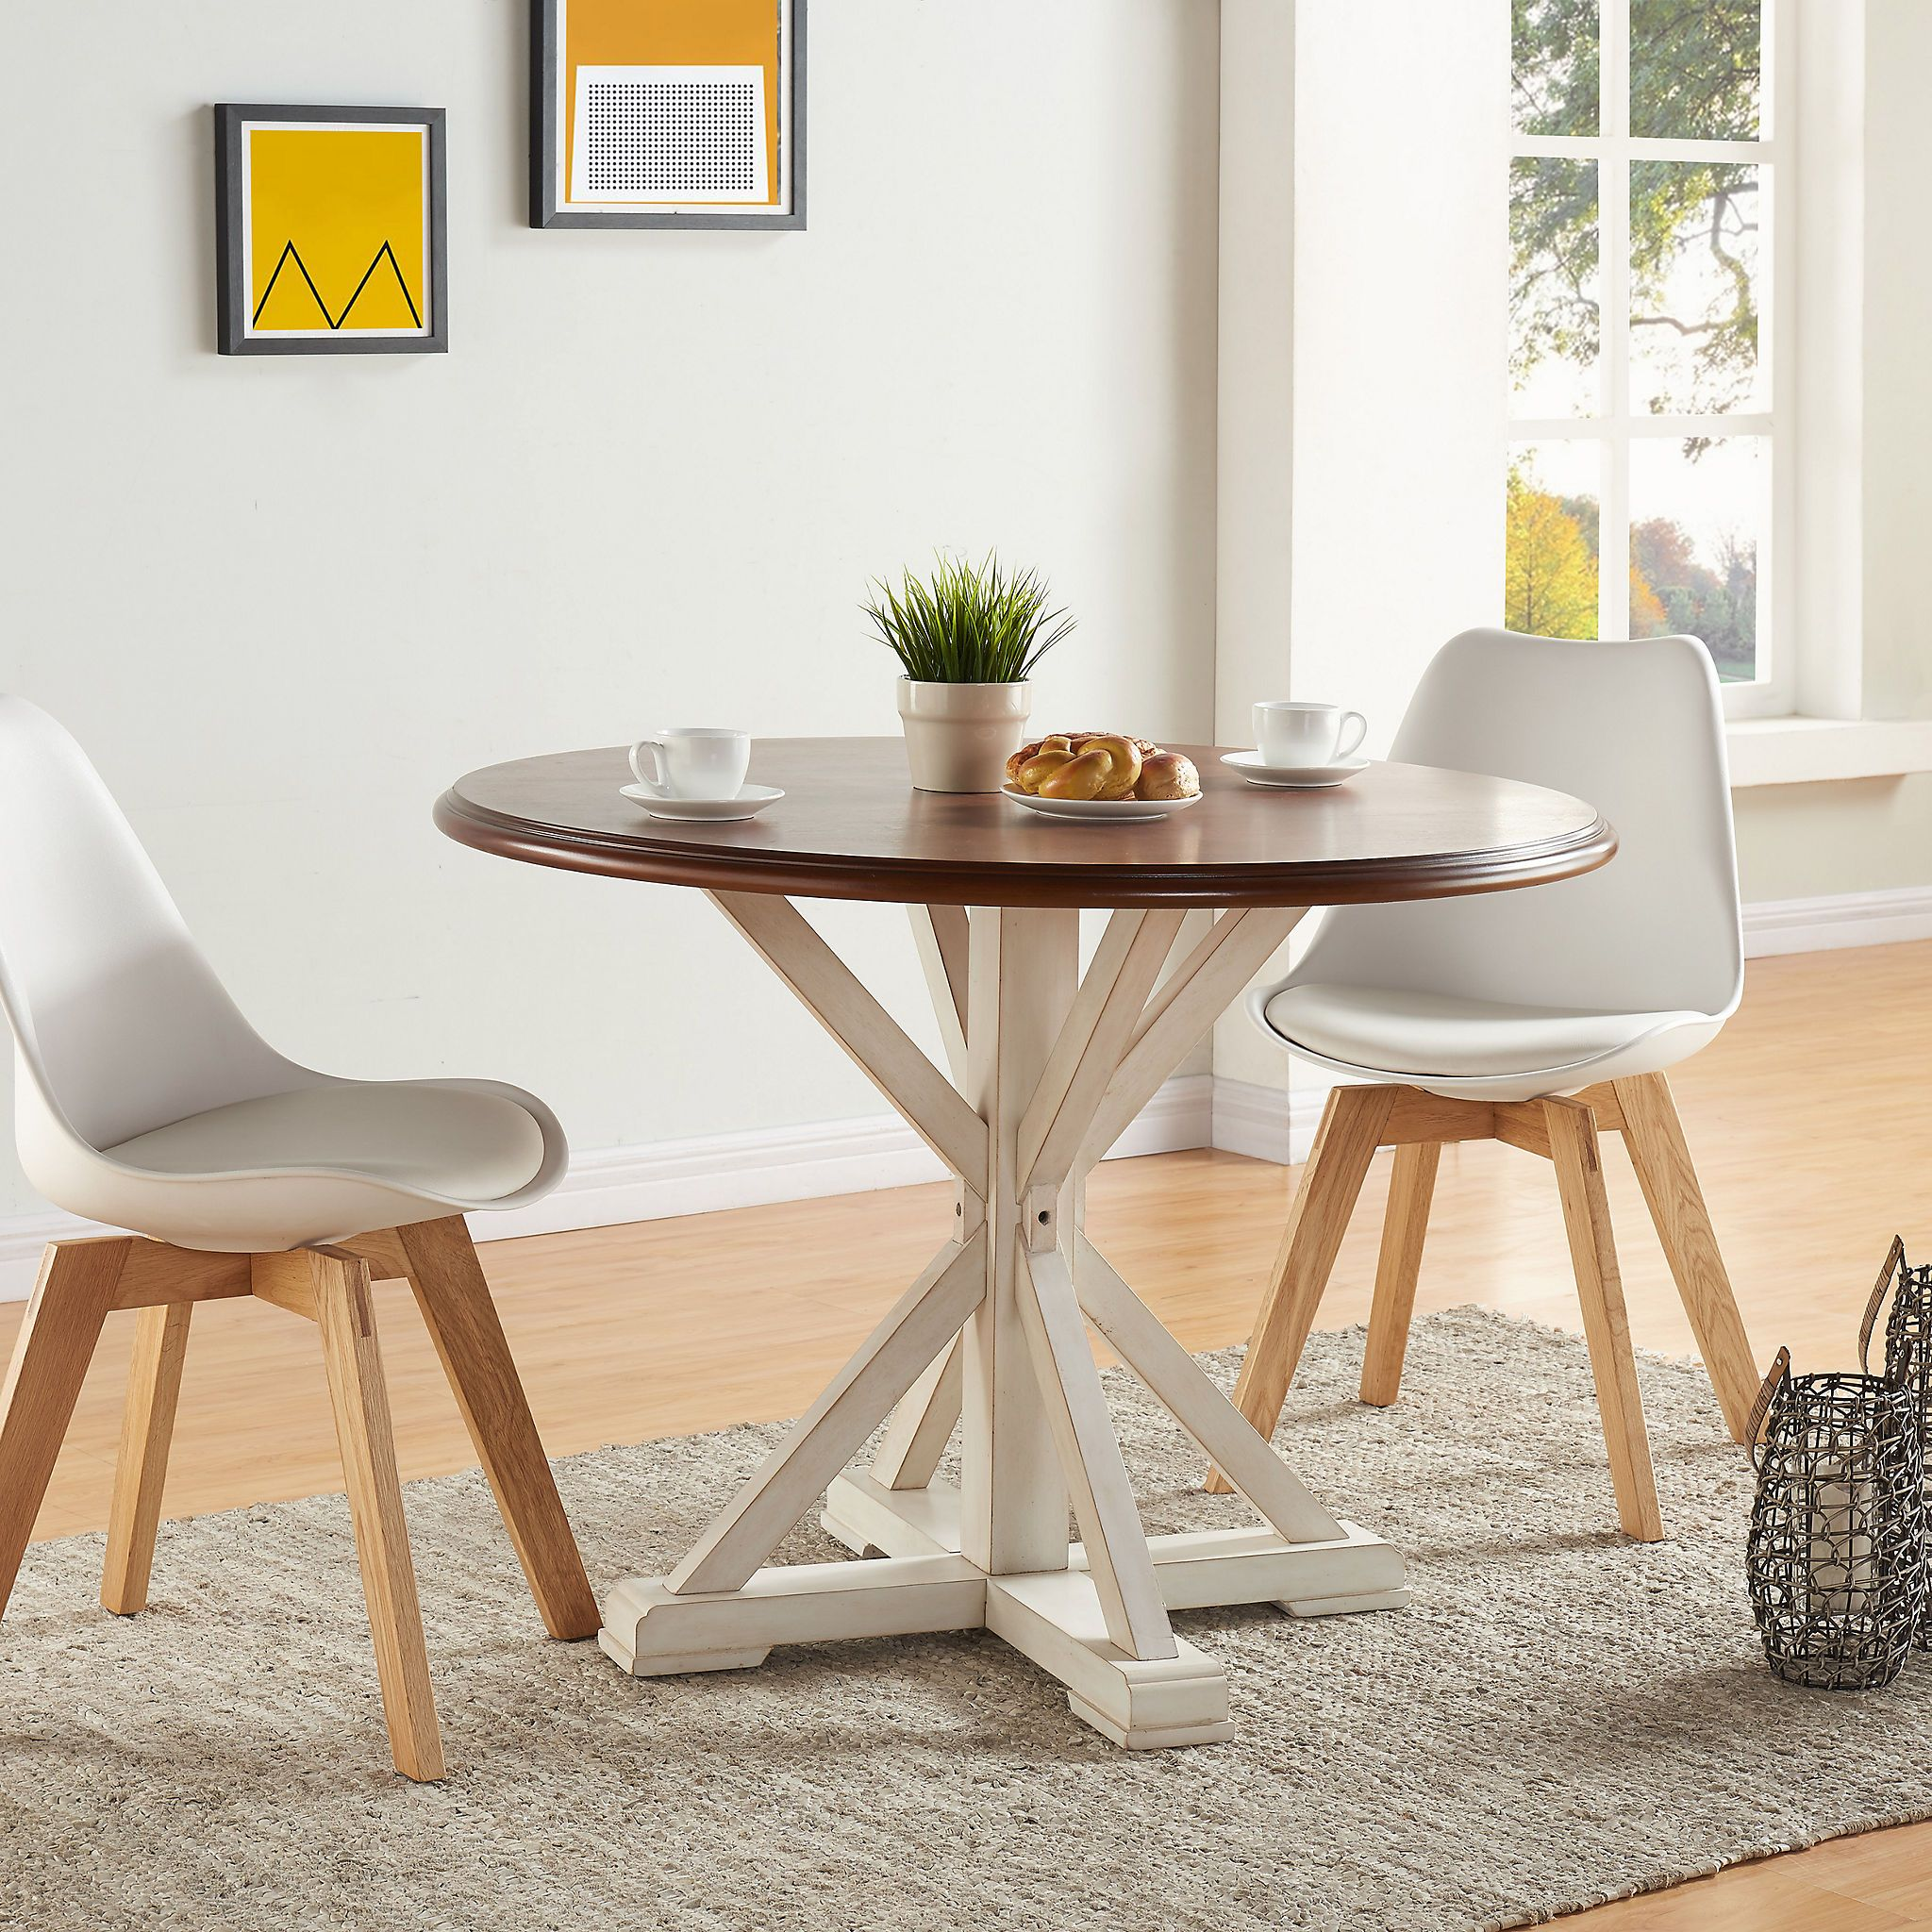 Eden Round Trestle Dining Table Round dining table